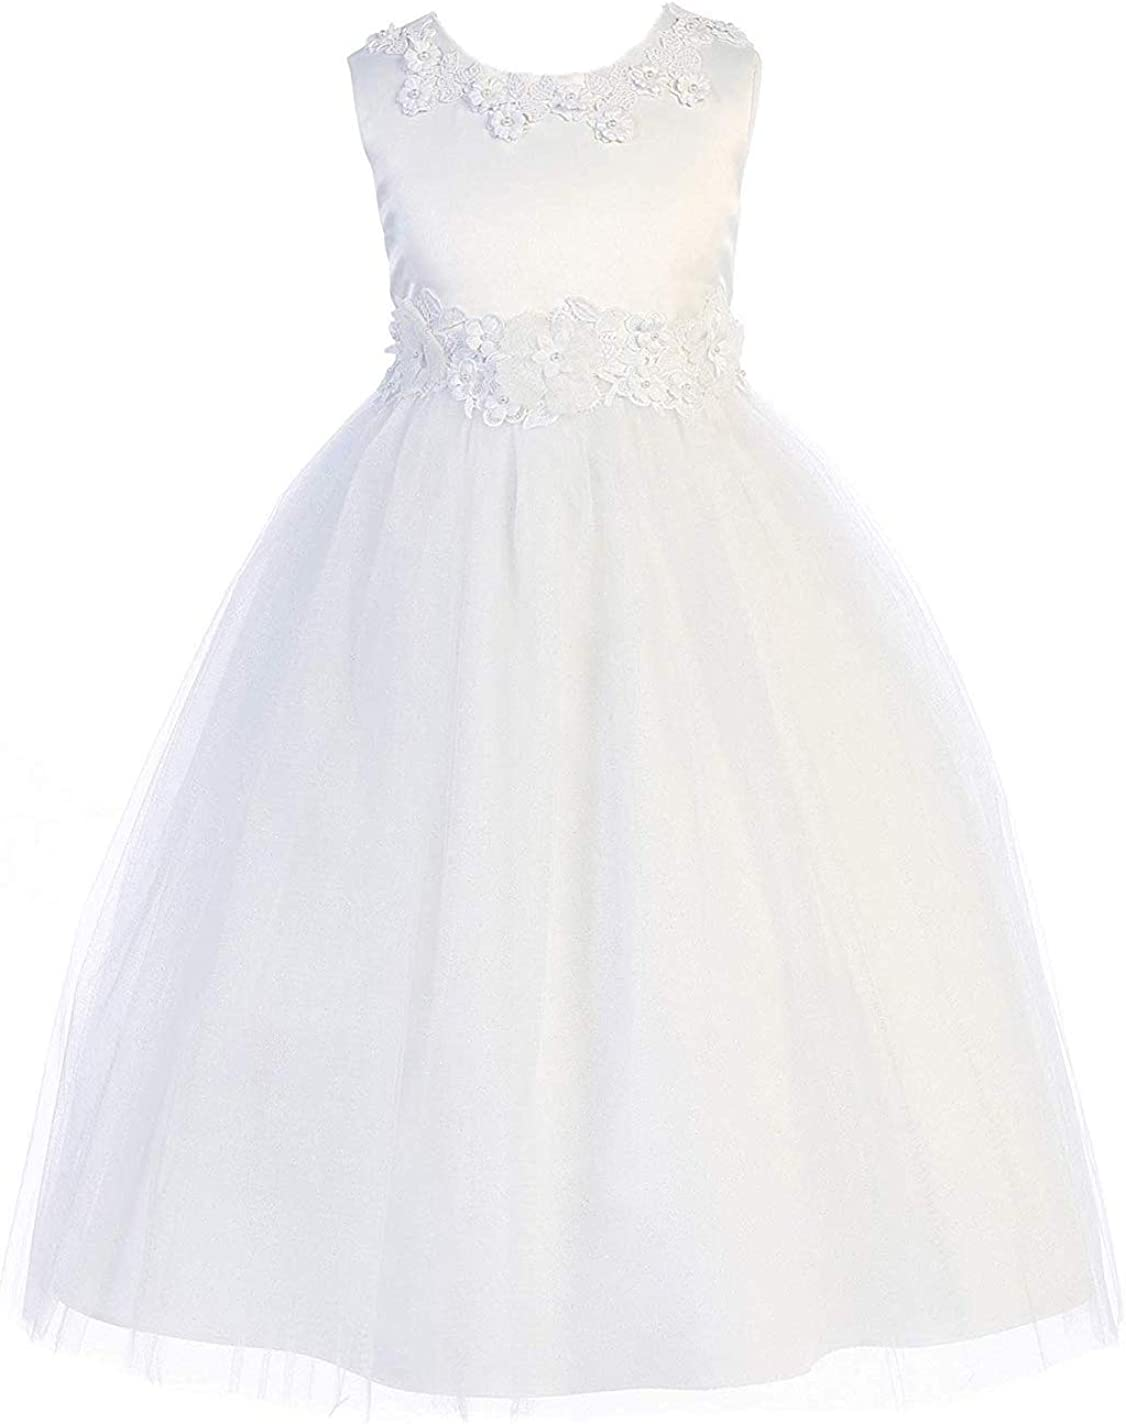 Girls' White First Communion Pageant Flower Girl Venetian Lace Illusion Dress Made in USA